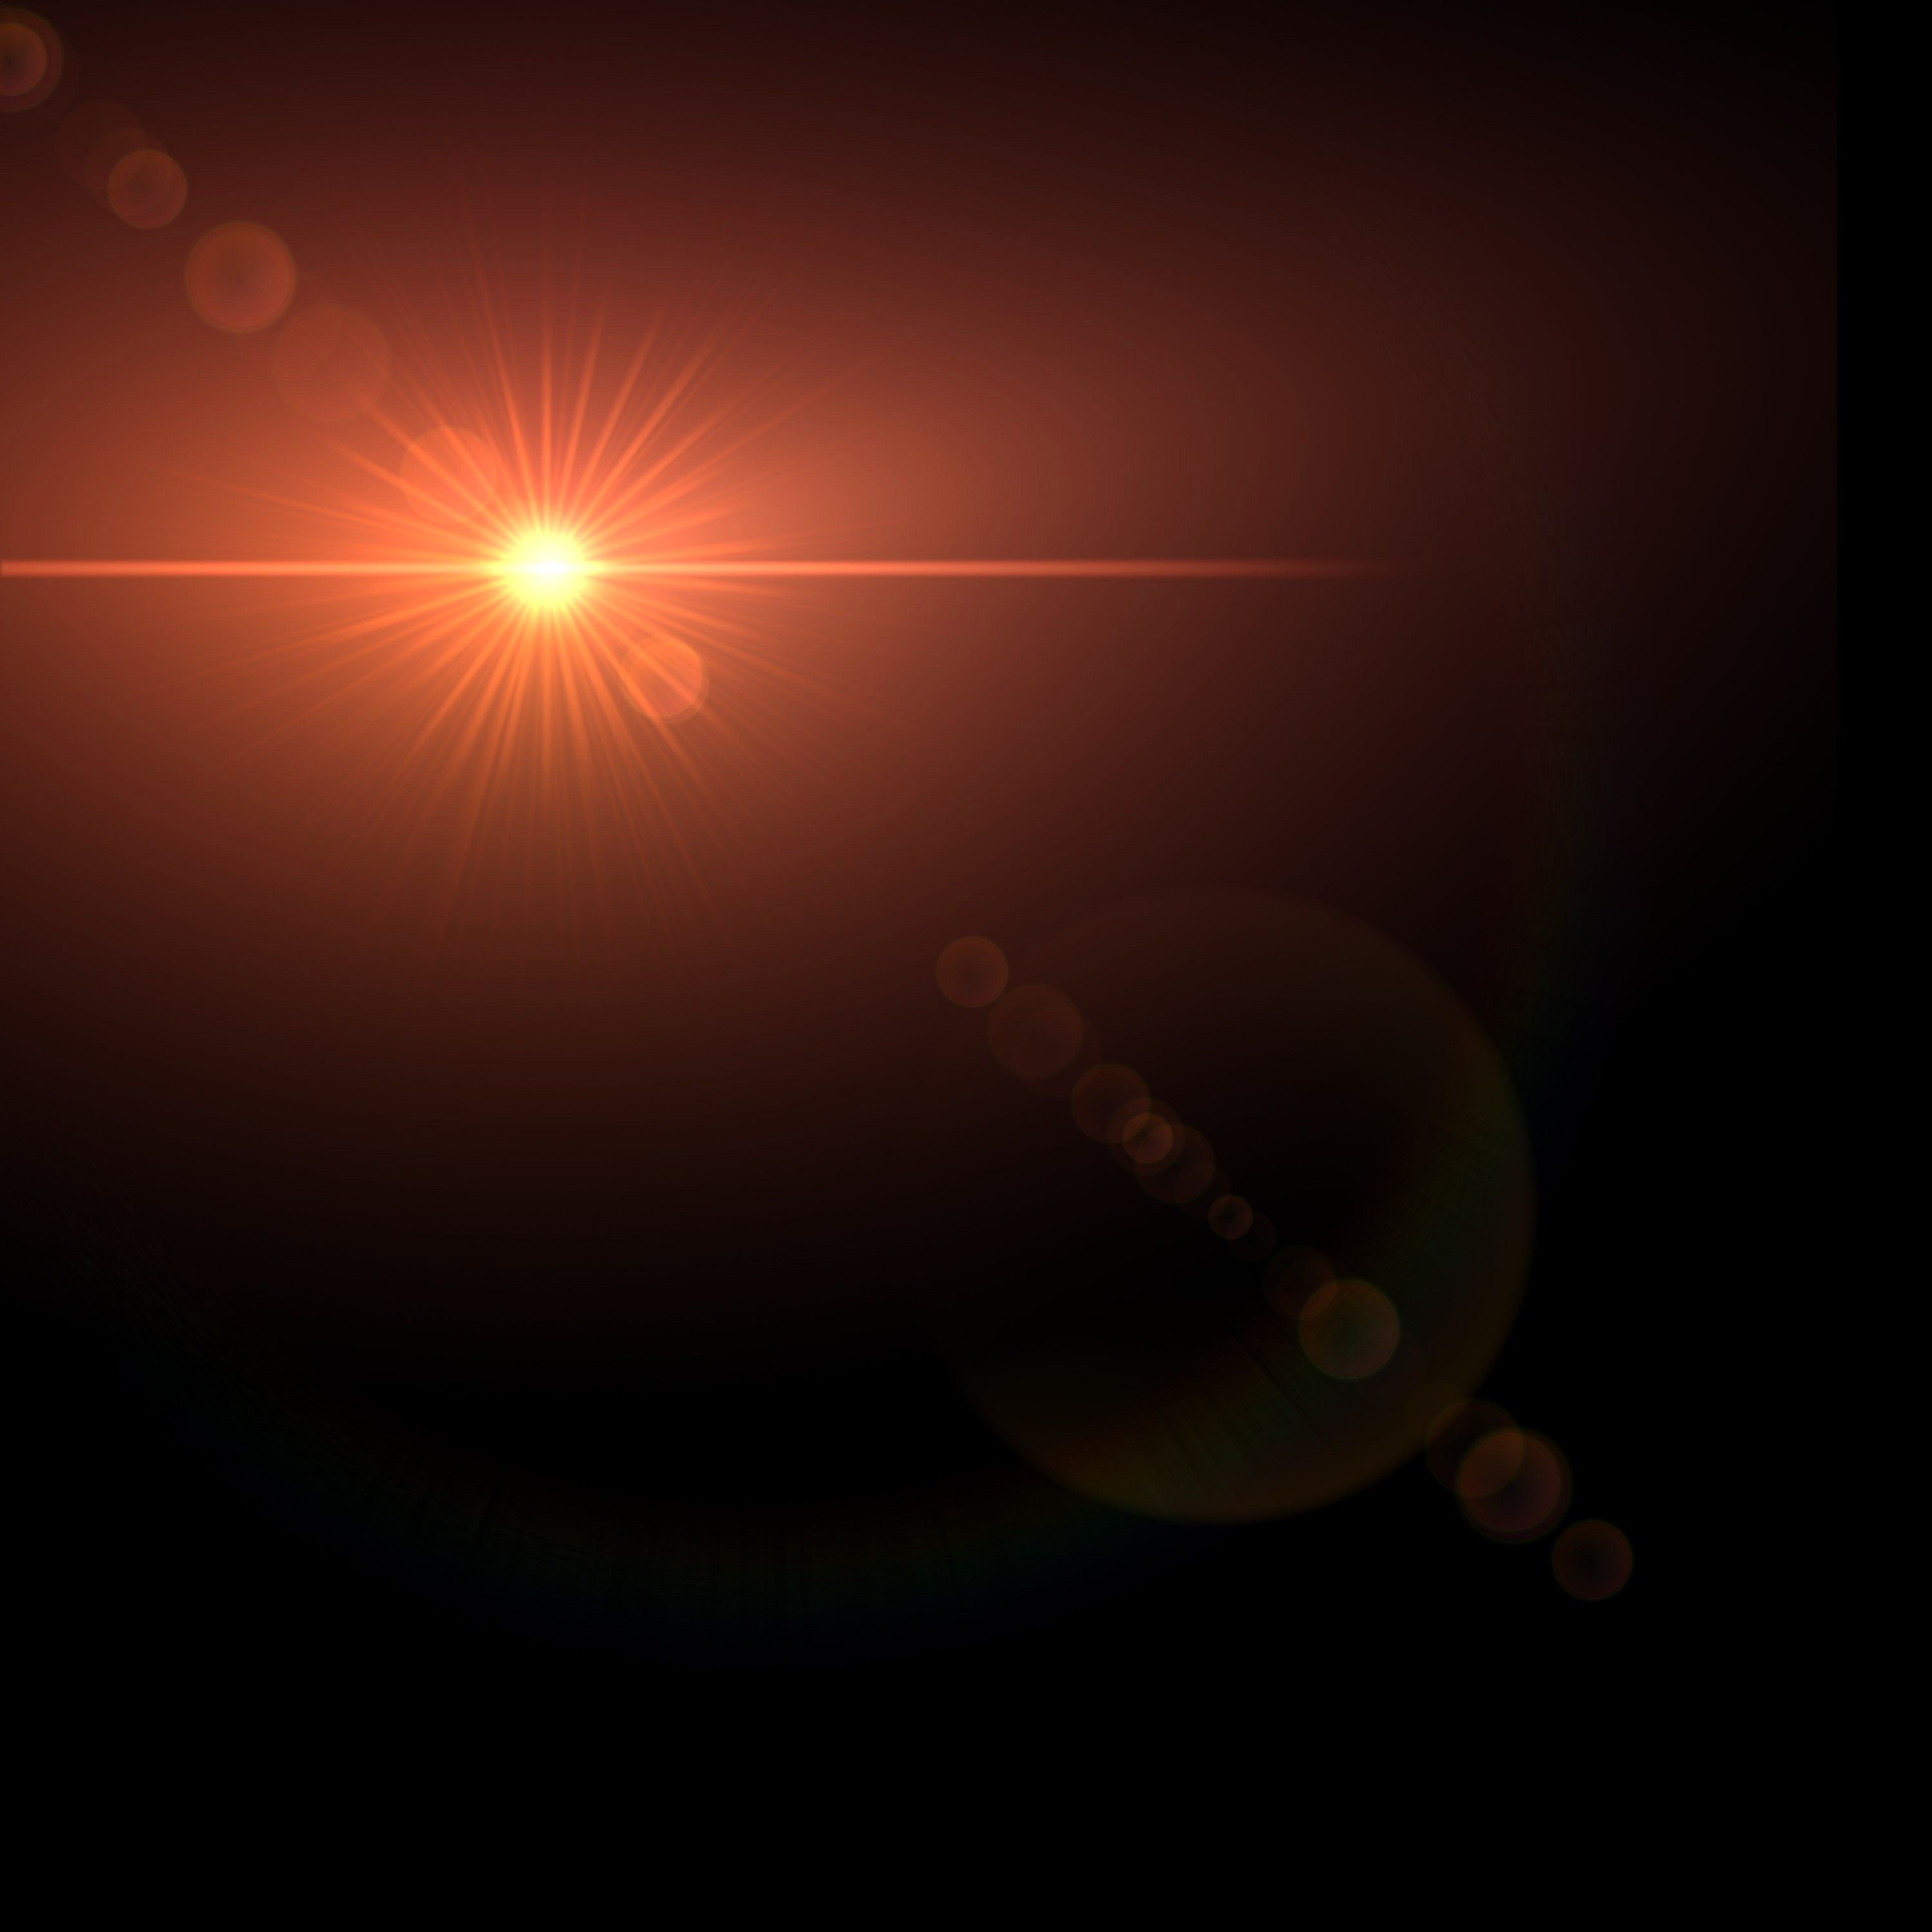 Light Flare Effects Volume 2 Light Background Images Light Flare Cool Optical Illusions